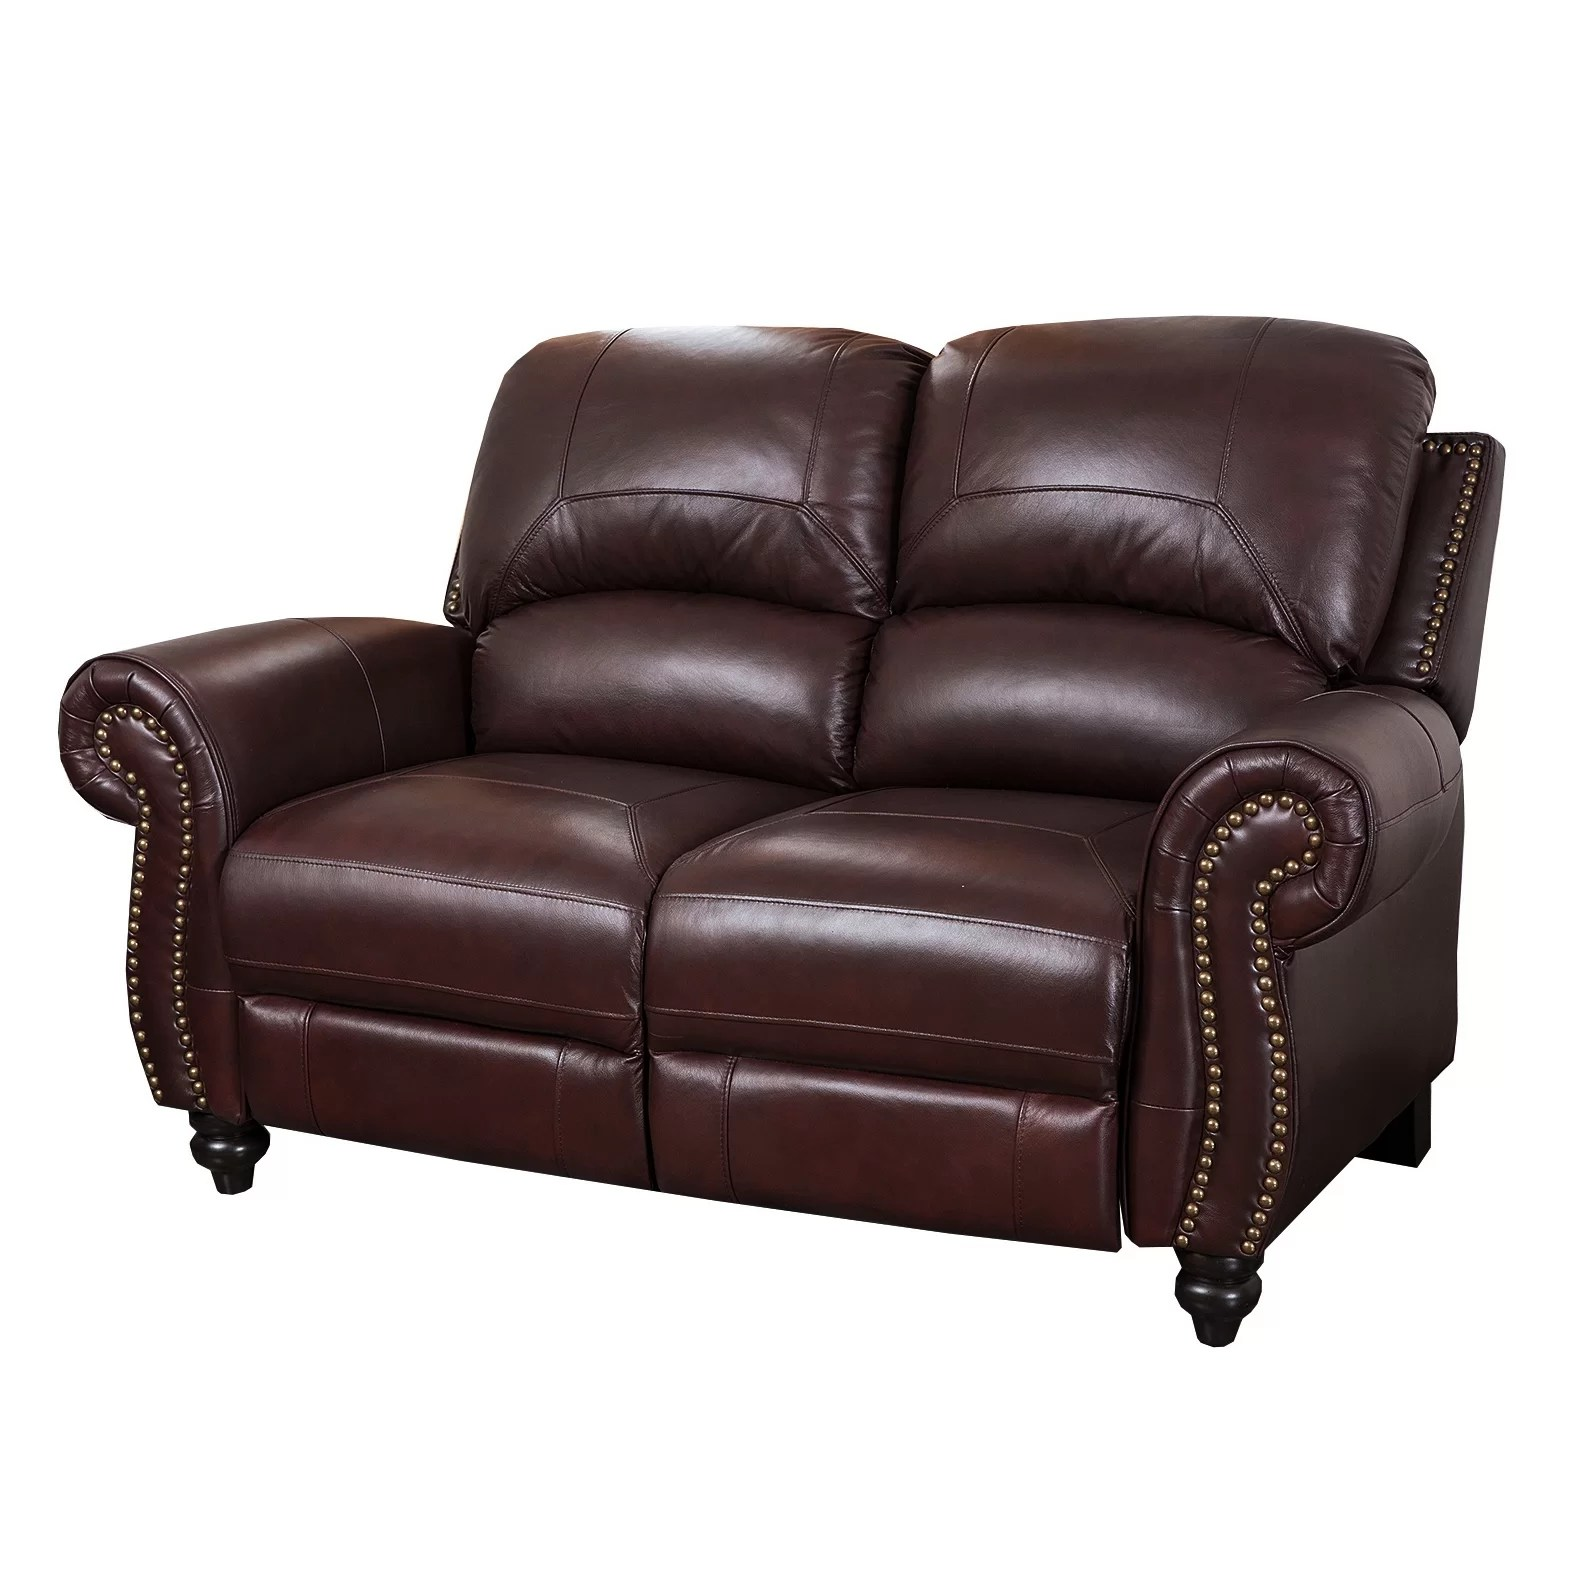 Leather Loveseat Darby Home Co Kahle Leather Reclining Loveseat And Reviews